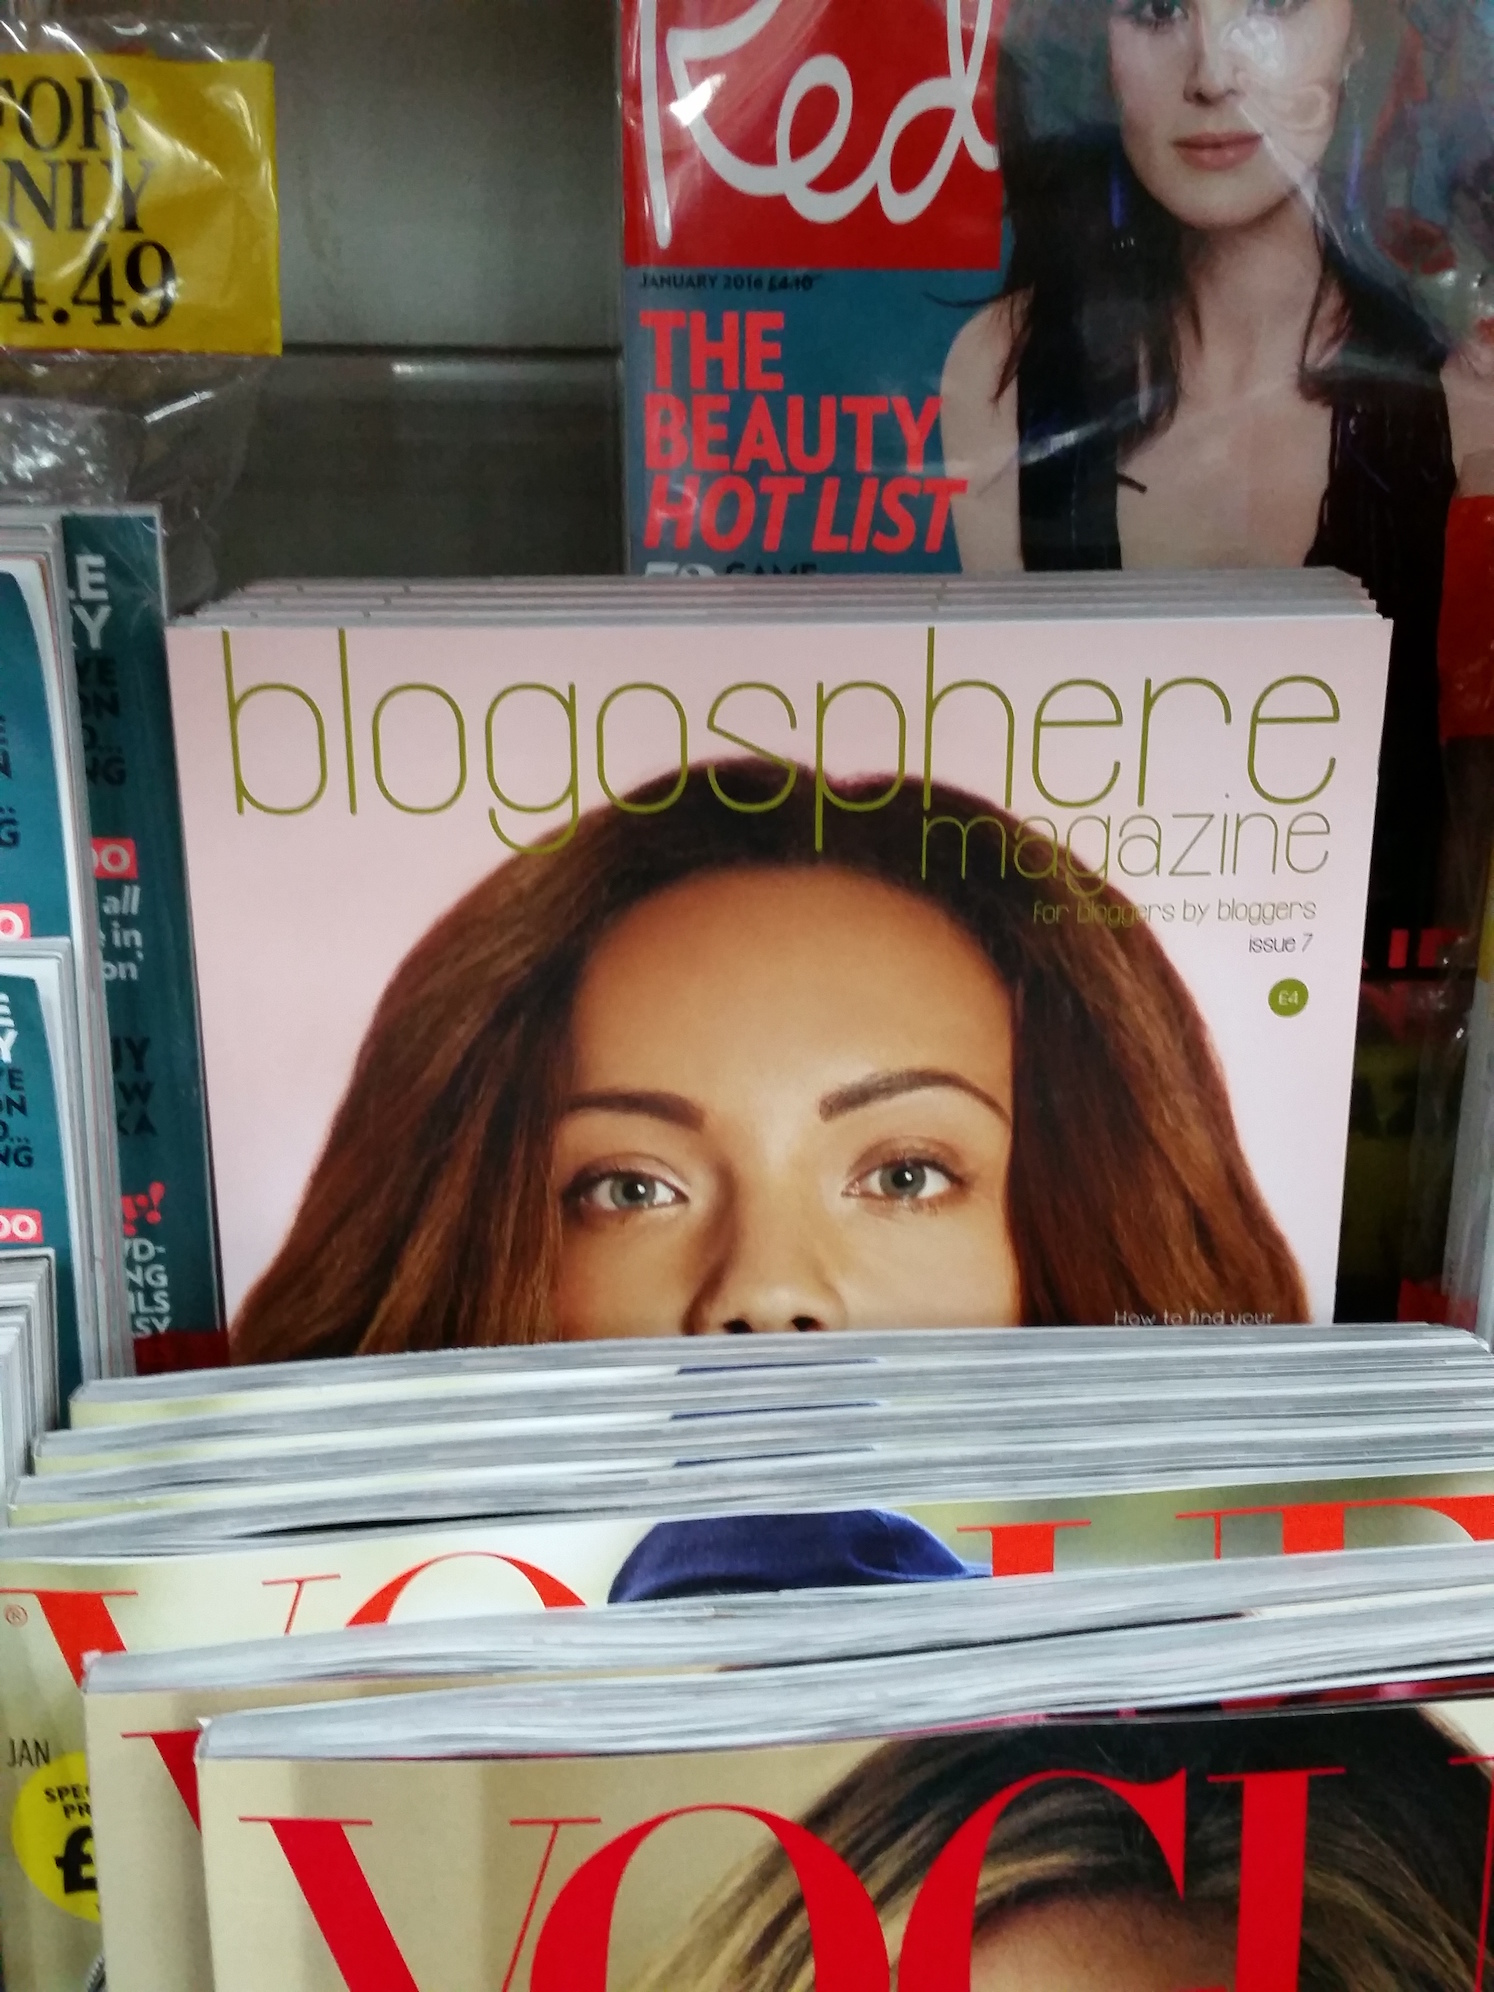 Blogosphere magazine on display in WH Smith. Photo by lipsticklori